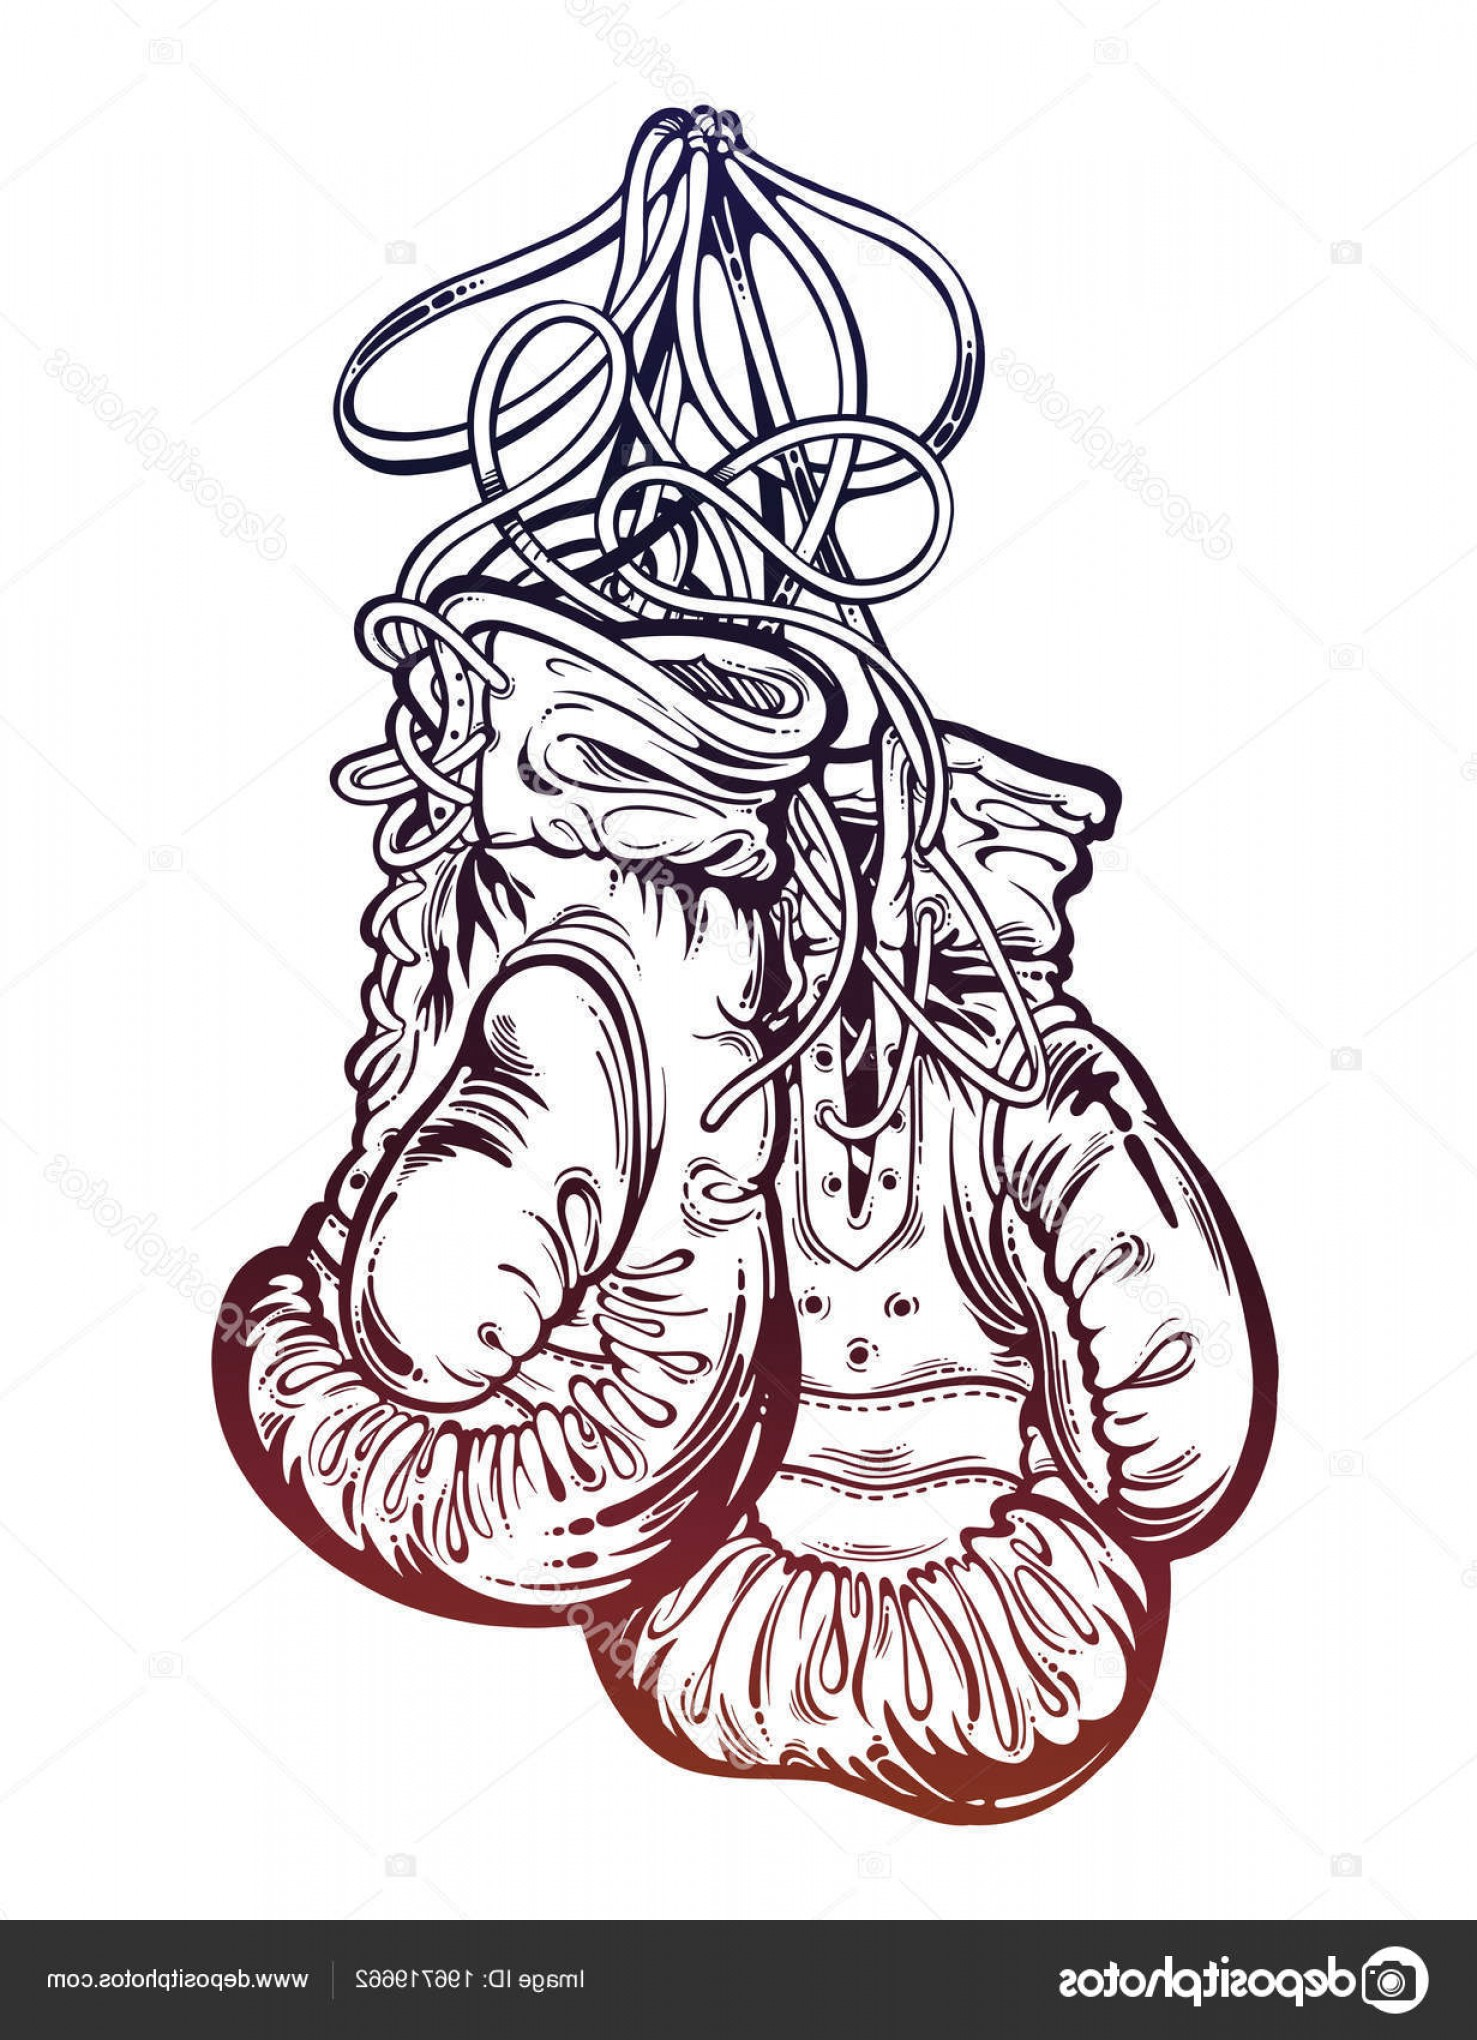 Pictures Of Boxing Gloves Vector Art: Stock Illustration Vintage Boxing Gloves Hanging From